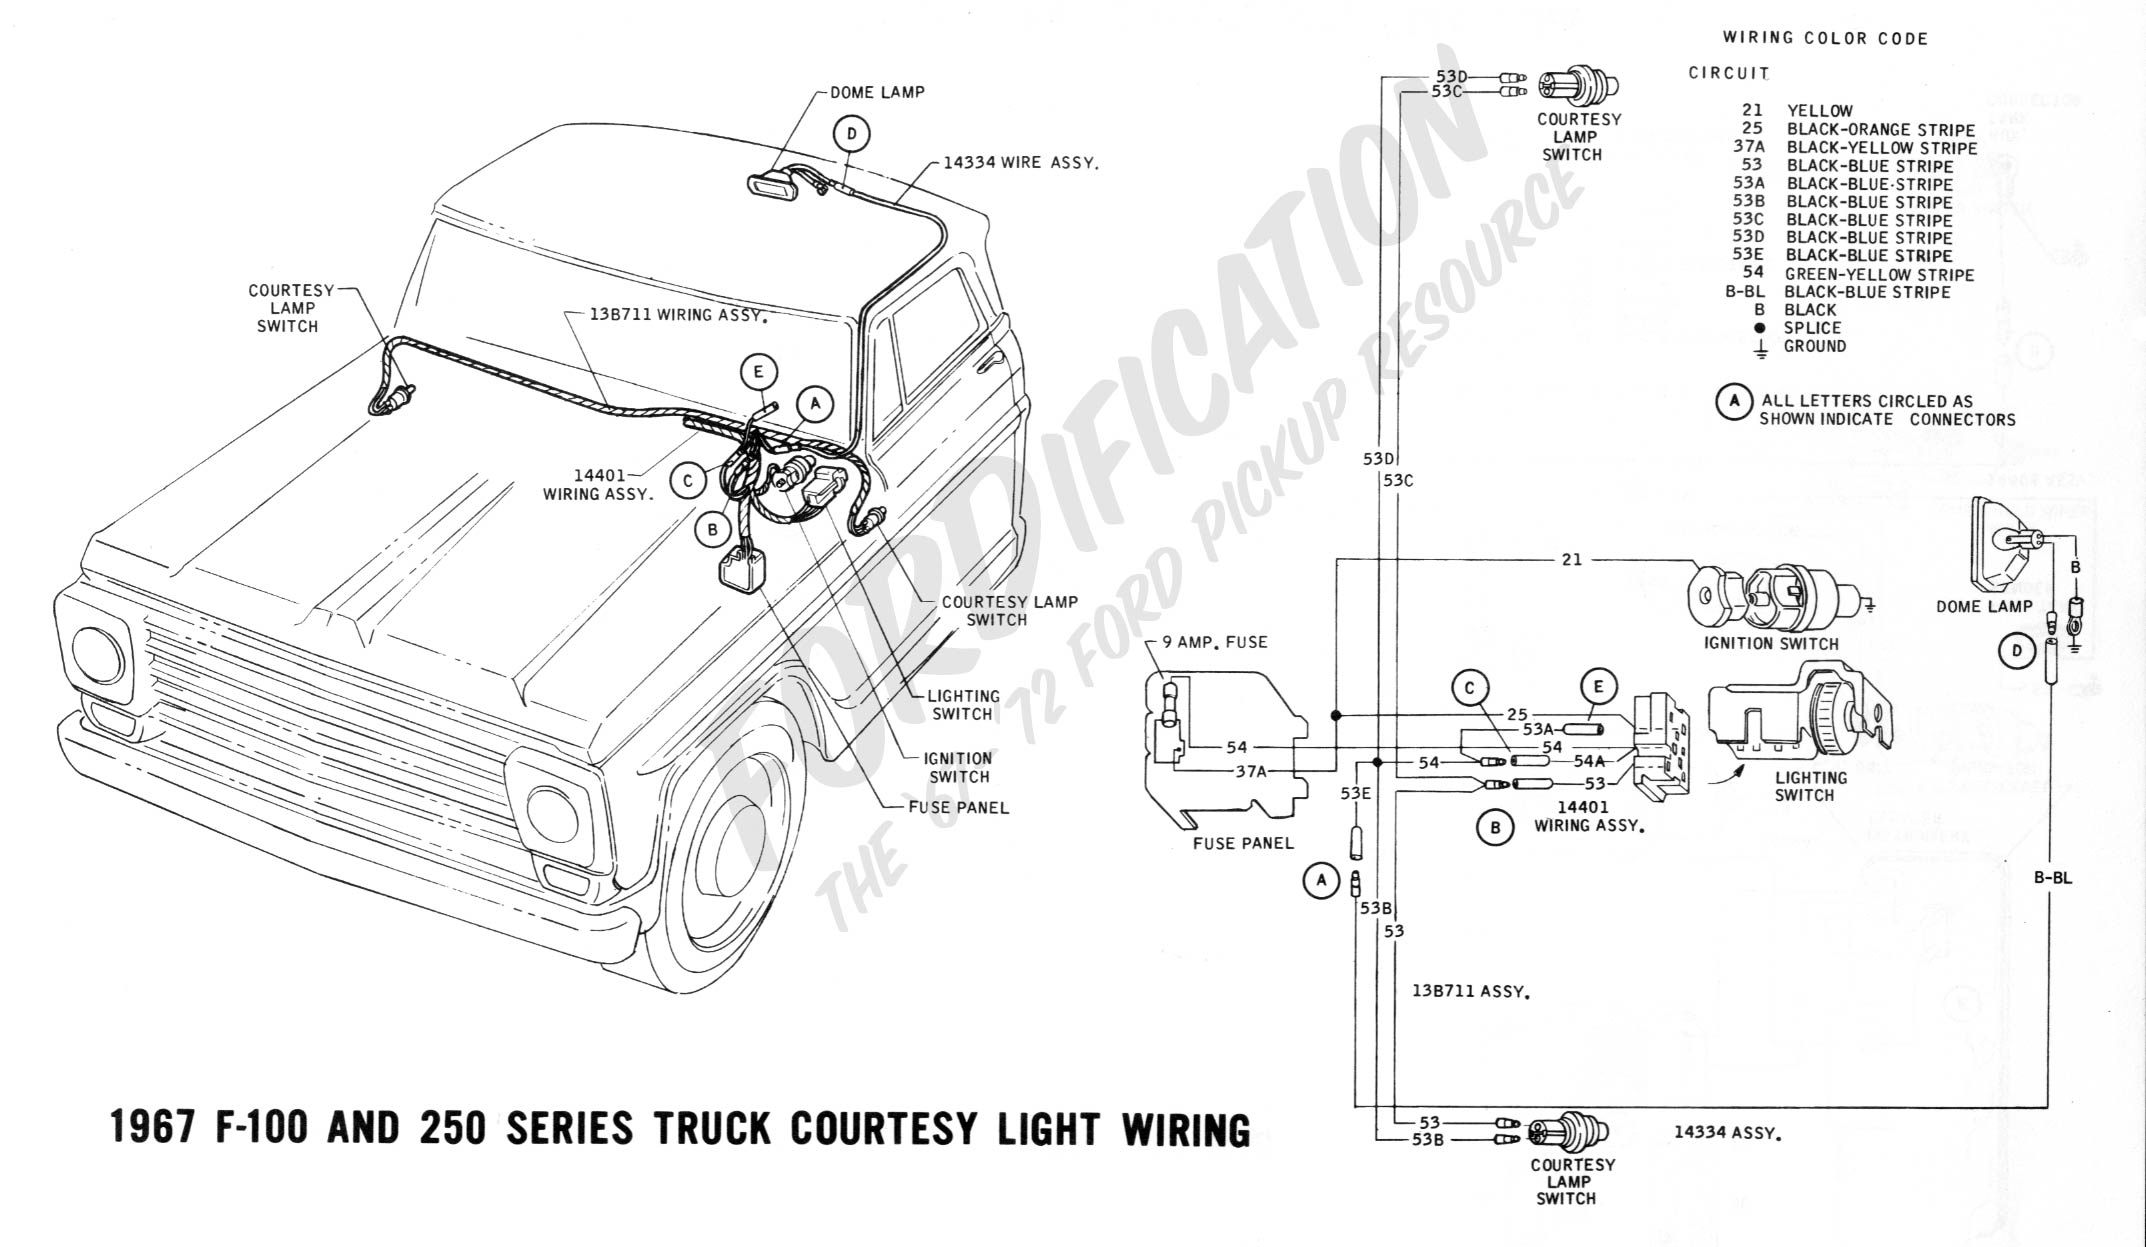 wiring 1967courtesylight ford truck technical drawings and schematics section h wiring 1957 ford wiring diagram at mr168.co